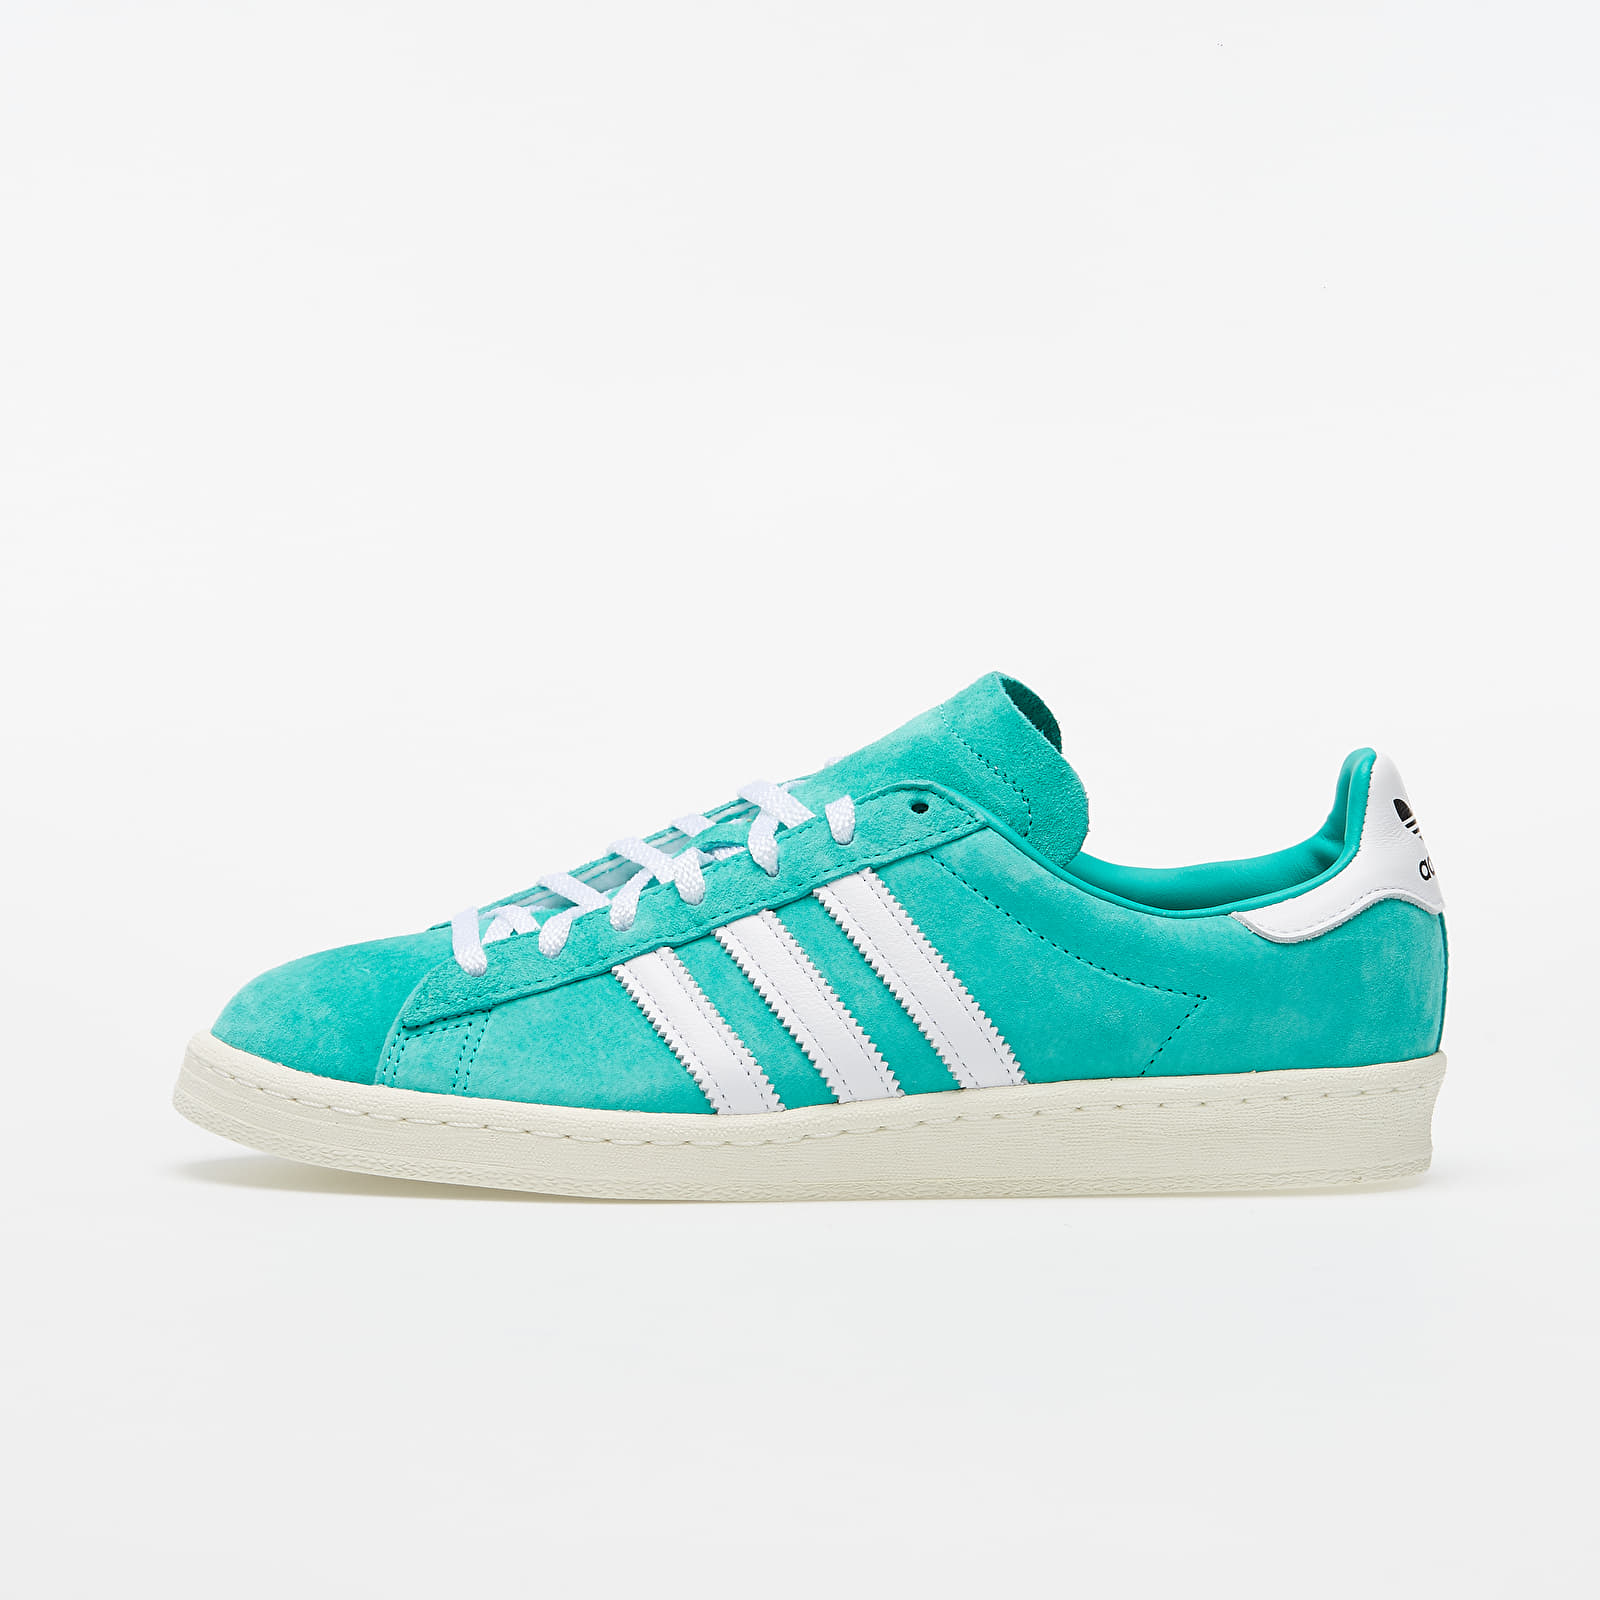 adidas Campus 80s Shock Mint/ Ftw White/ Core Black EUR 41 1/3